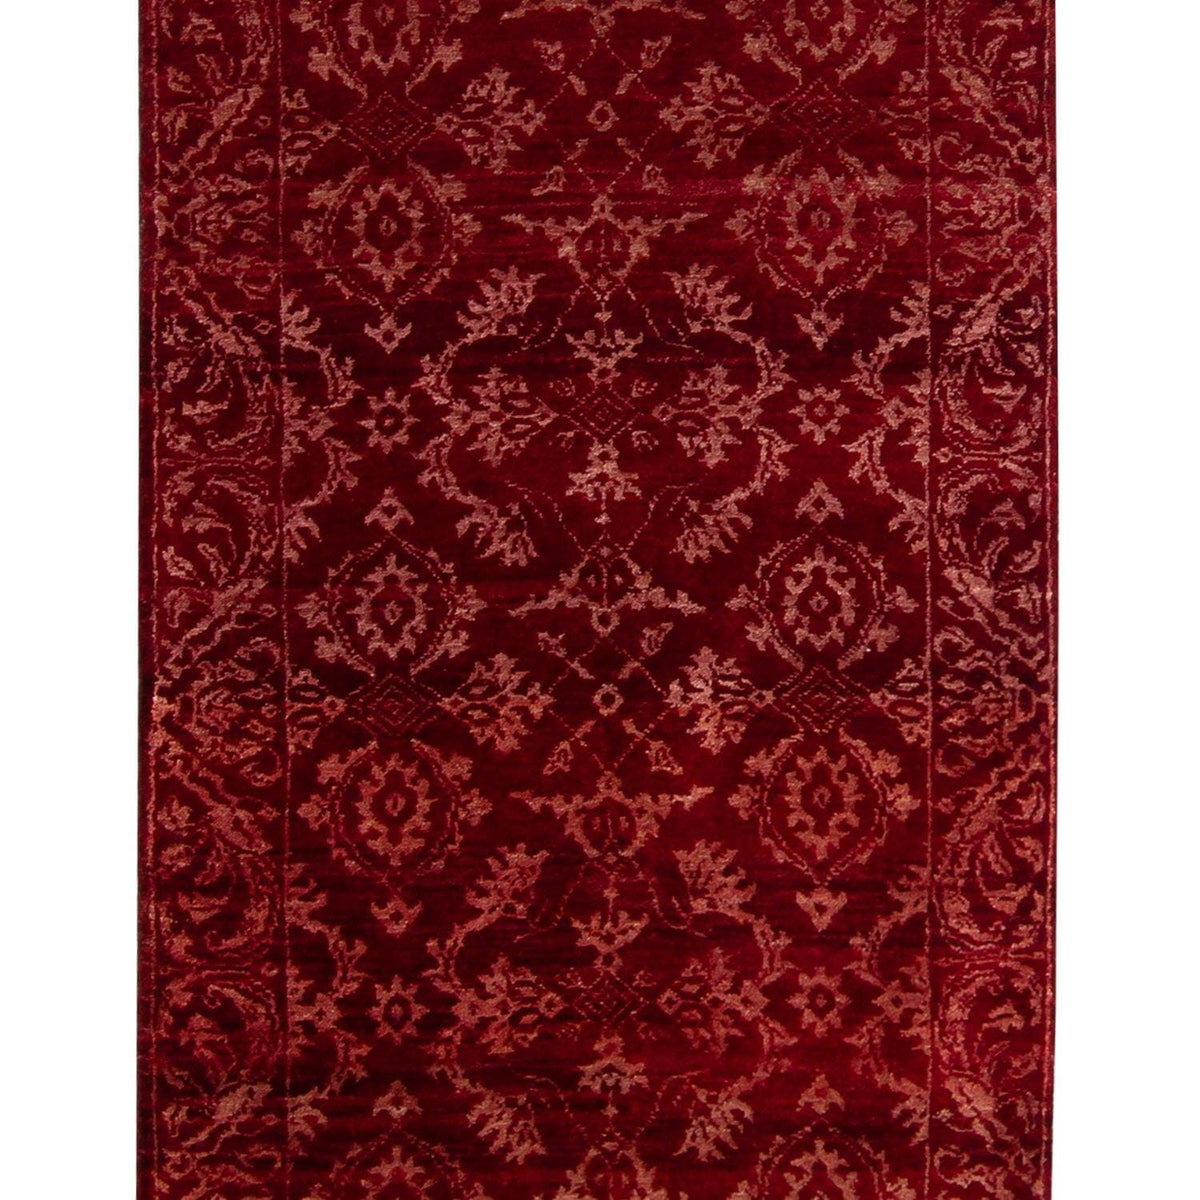 Fine Contemporary Hand-knotted NZ Wool Runner 77cm x 292cm Persian-Rug | House-of-Haghi | NewMarket | Auckland | NZ | Handmade Persian Rugs | Hand Knotted Persian Rugs